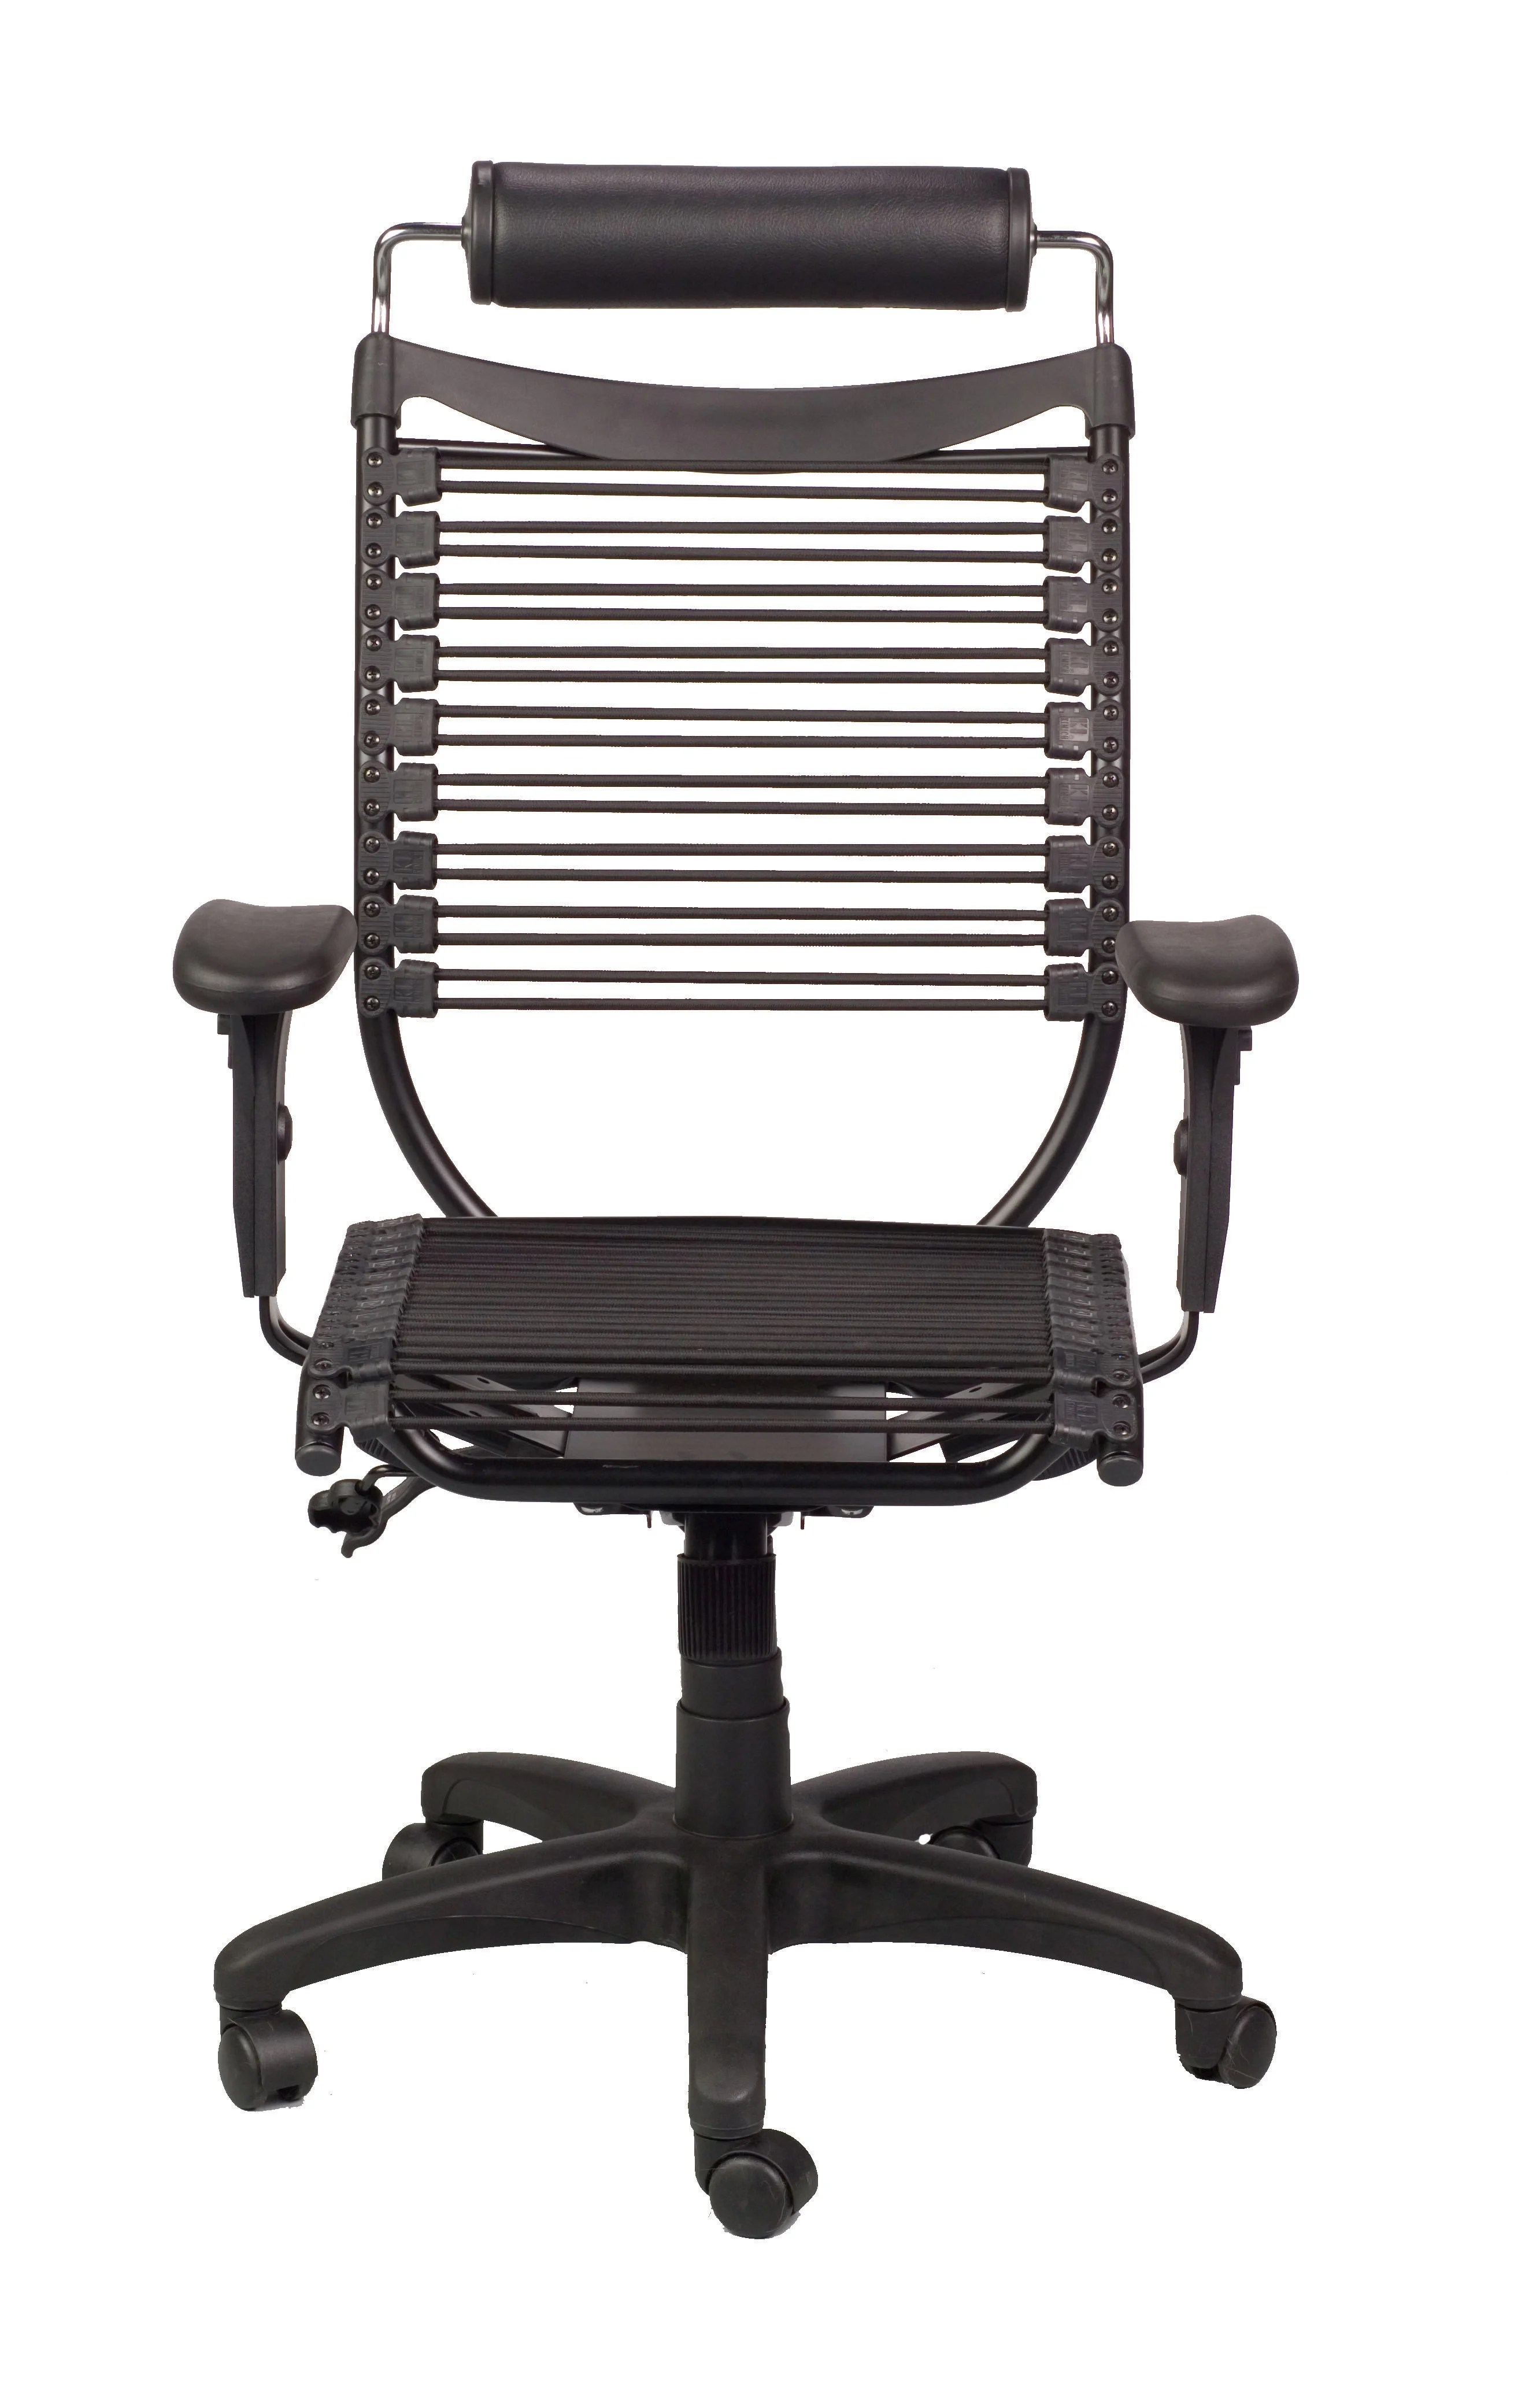 Desk Seat Seatflex Desk Chair